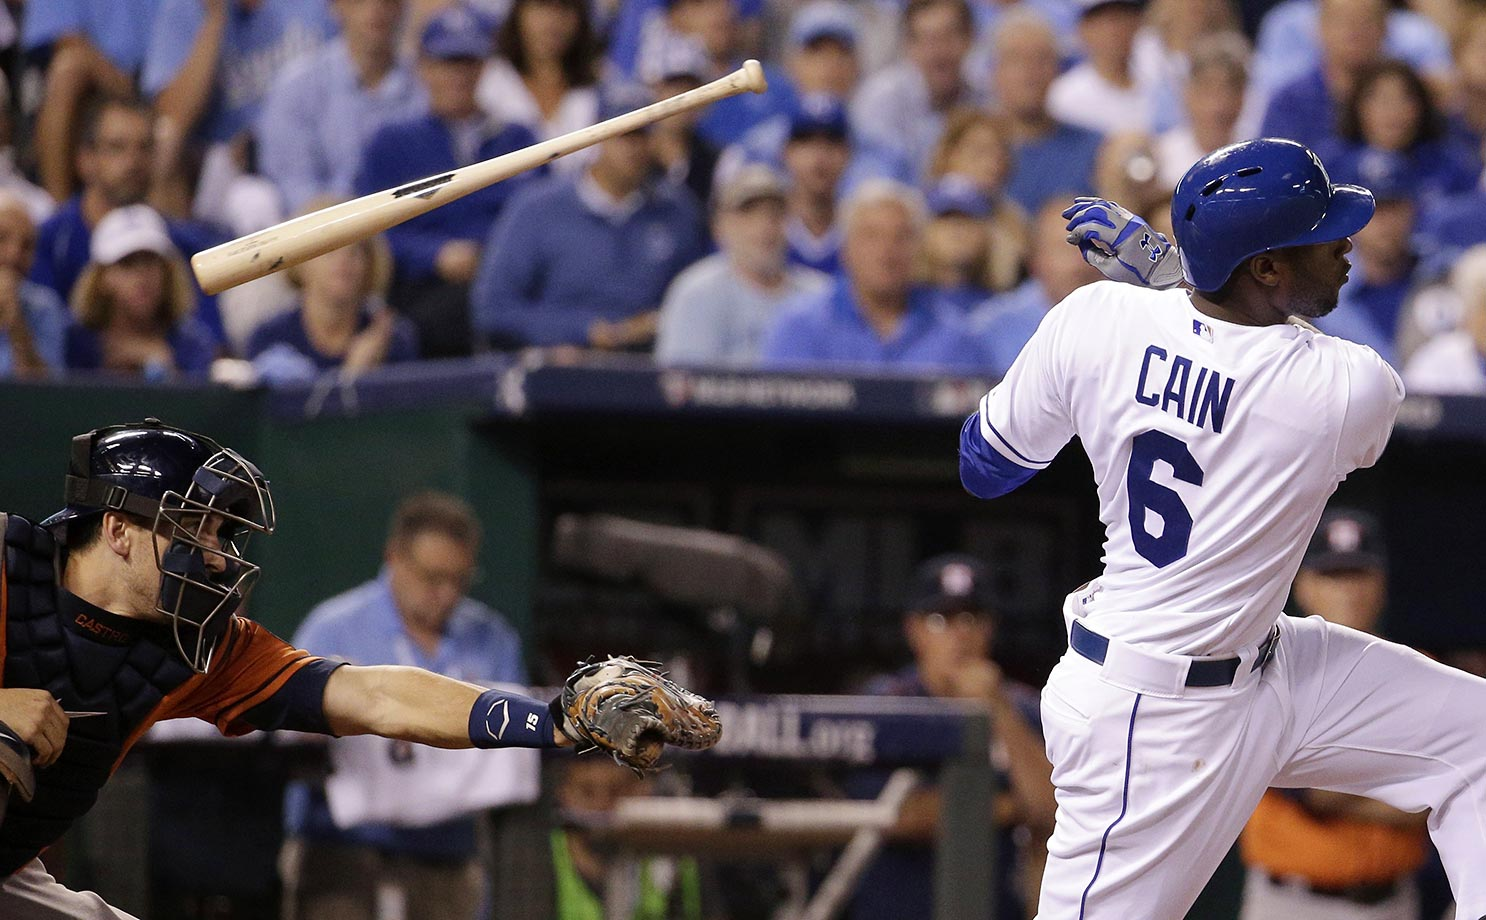 Lorenzo Cain of the Royals loses his bat on a strike against the Astros.